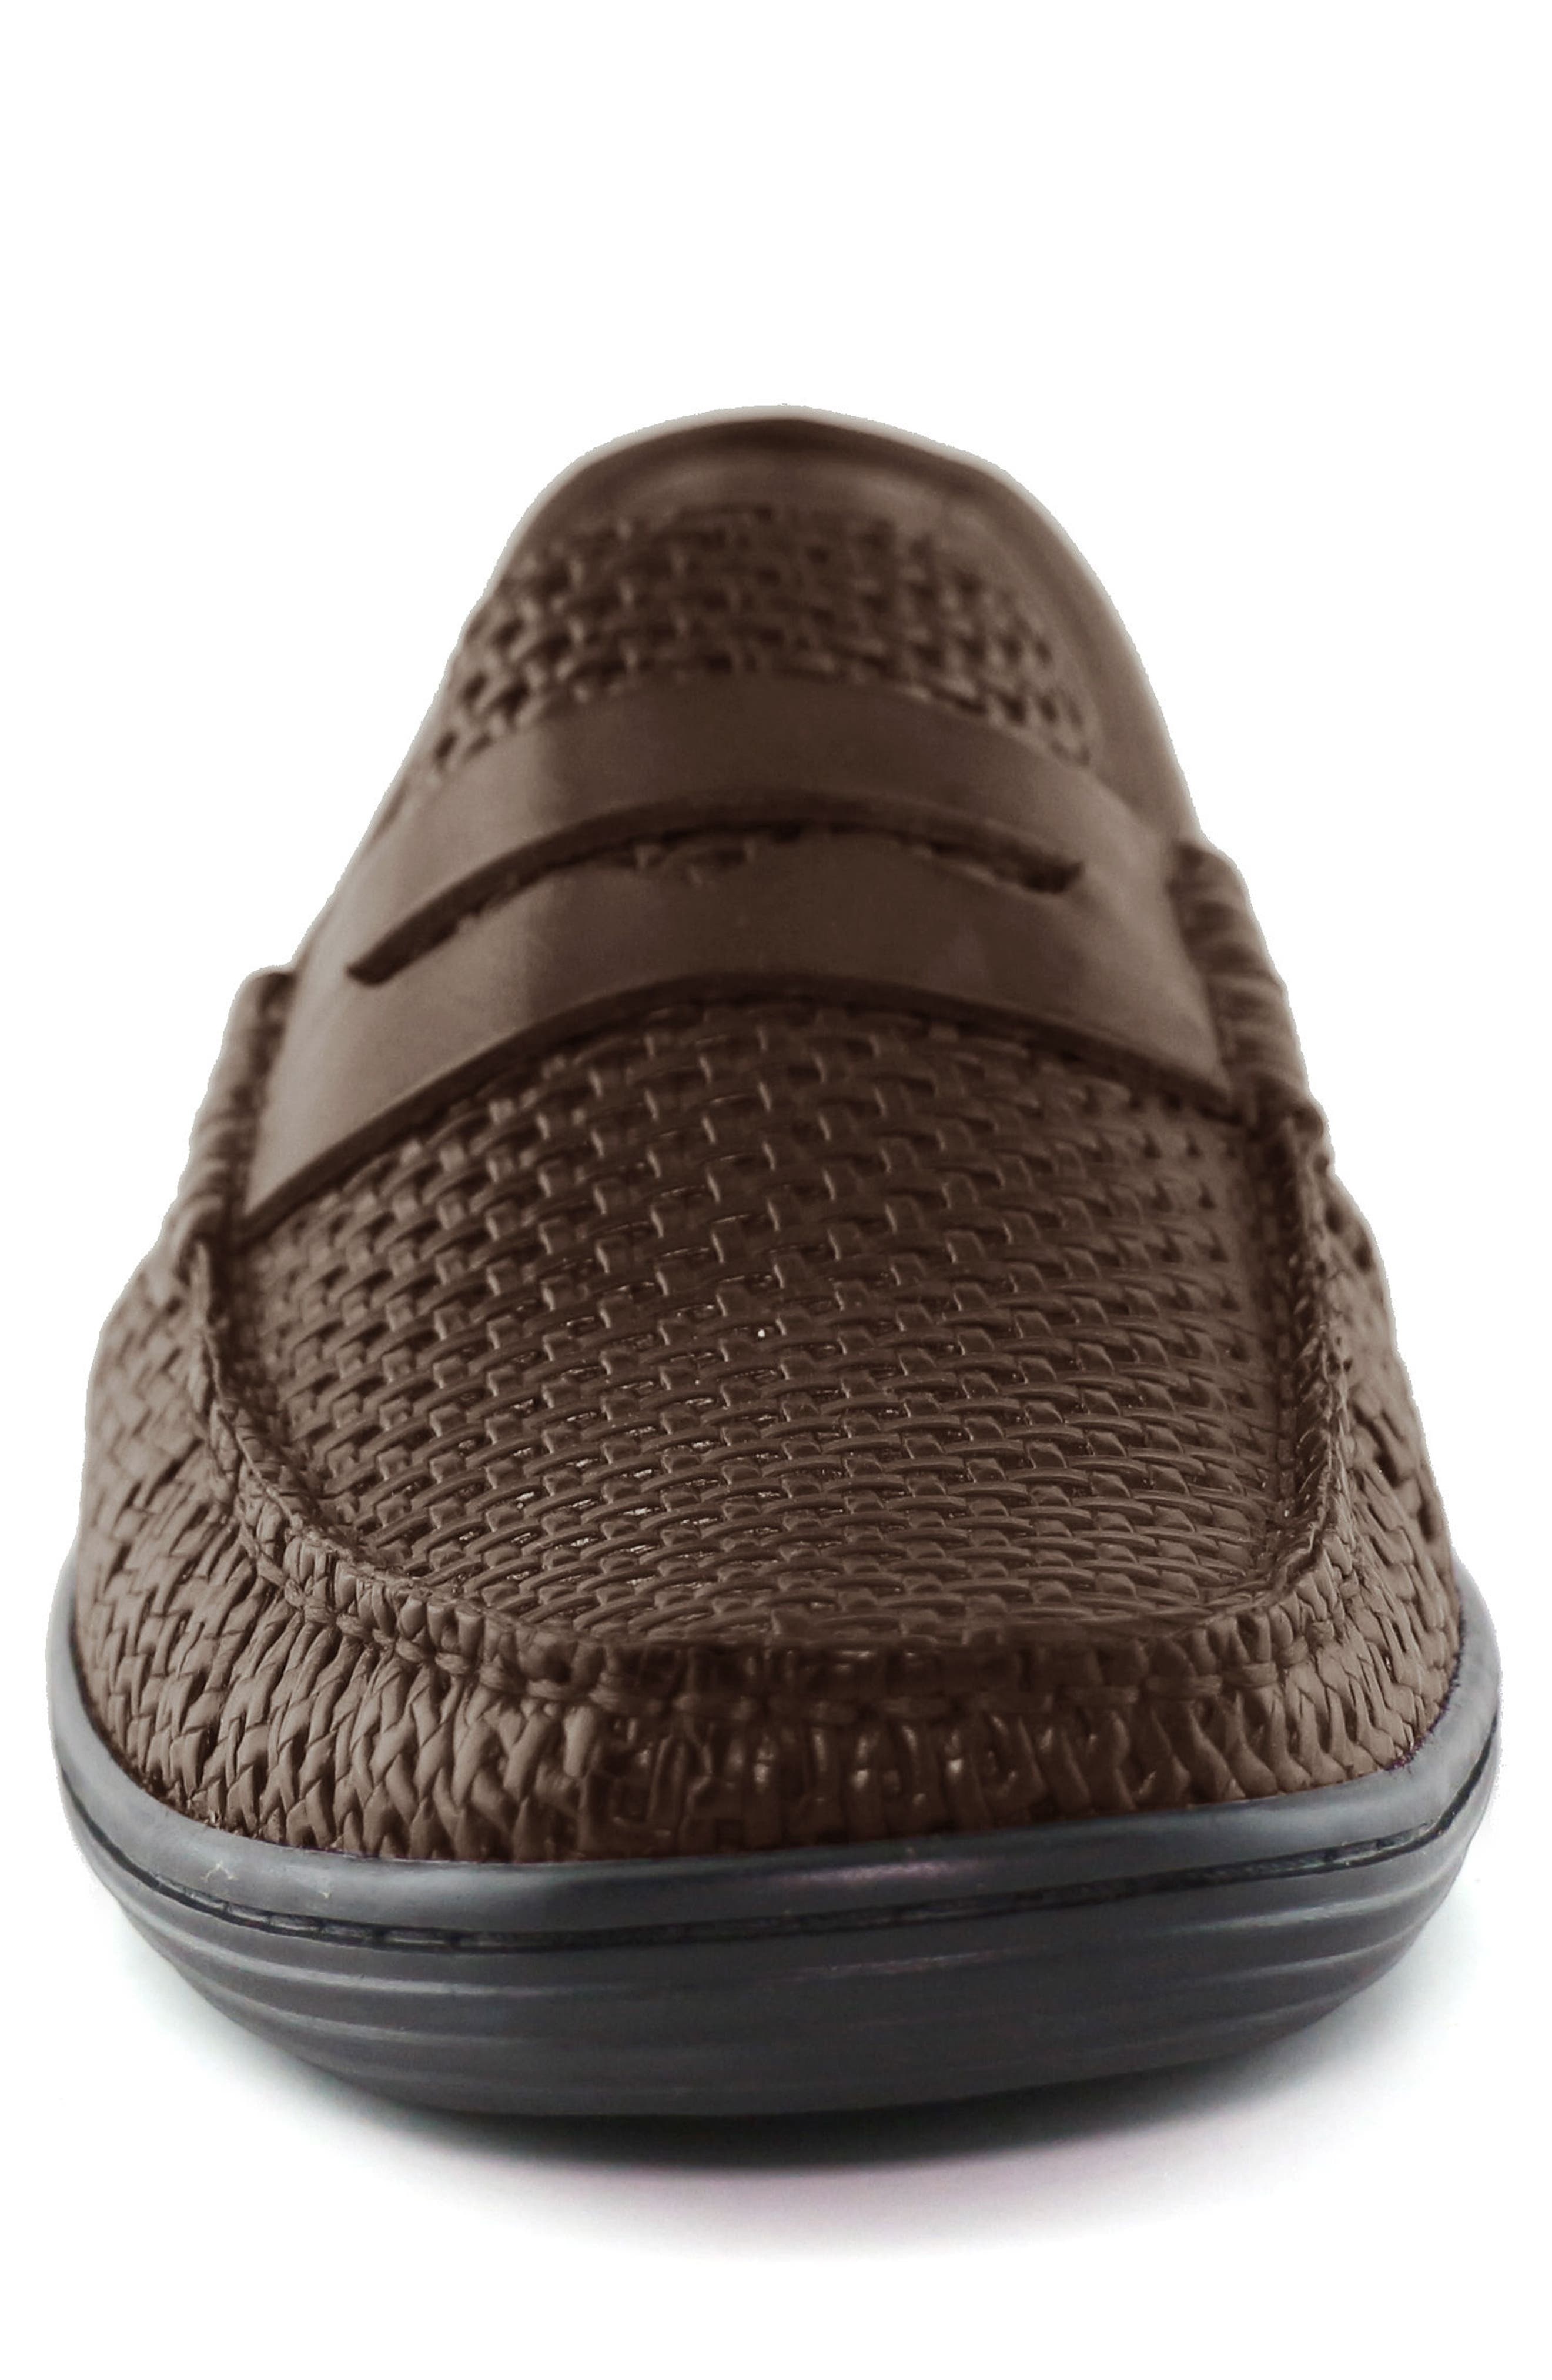 Atlantic Penny Loafer,                             Alternate thumbnail 4, color,                             Brown Leather